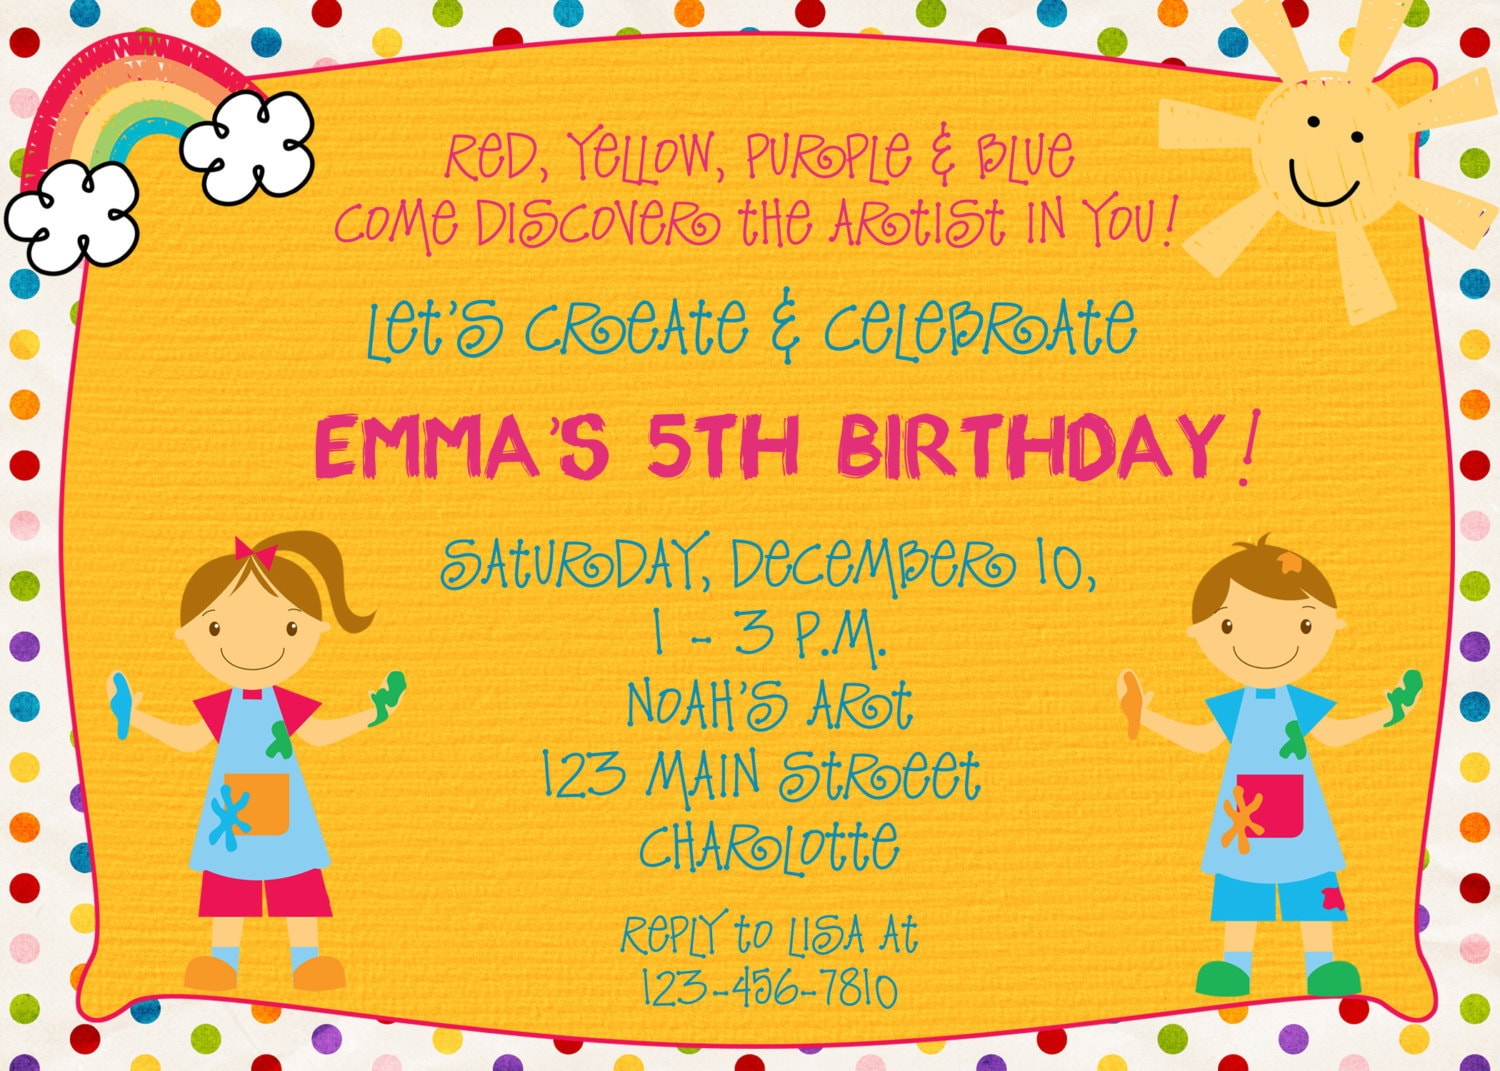 Paint party birthday invitation art party arts and crafts for Crafts to do at a birthday party